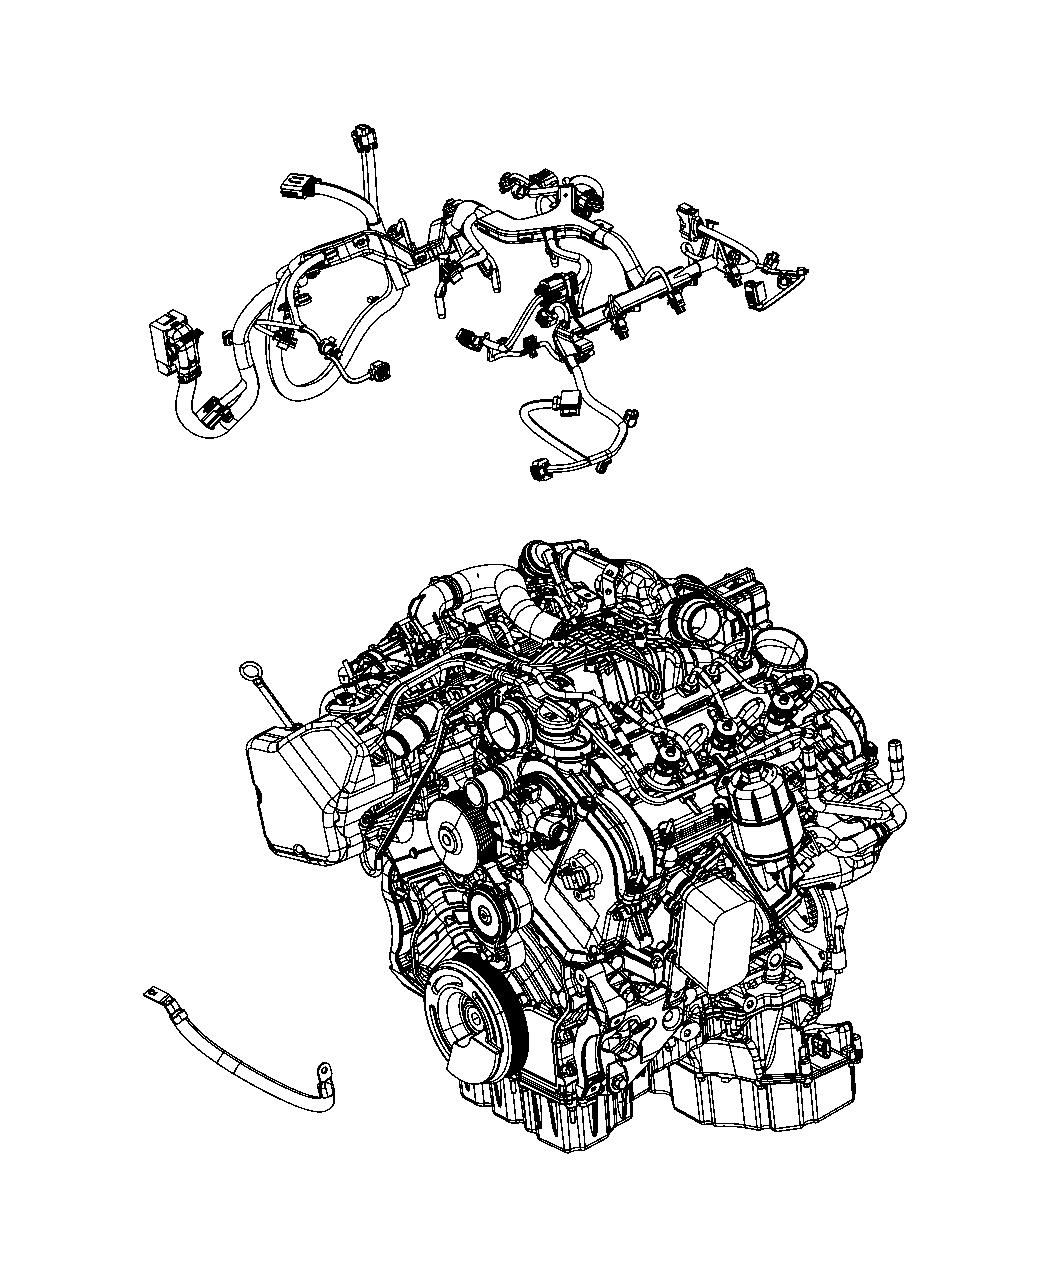 Jeep Grand Cherokee Wiring Injector 50 State Emissions